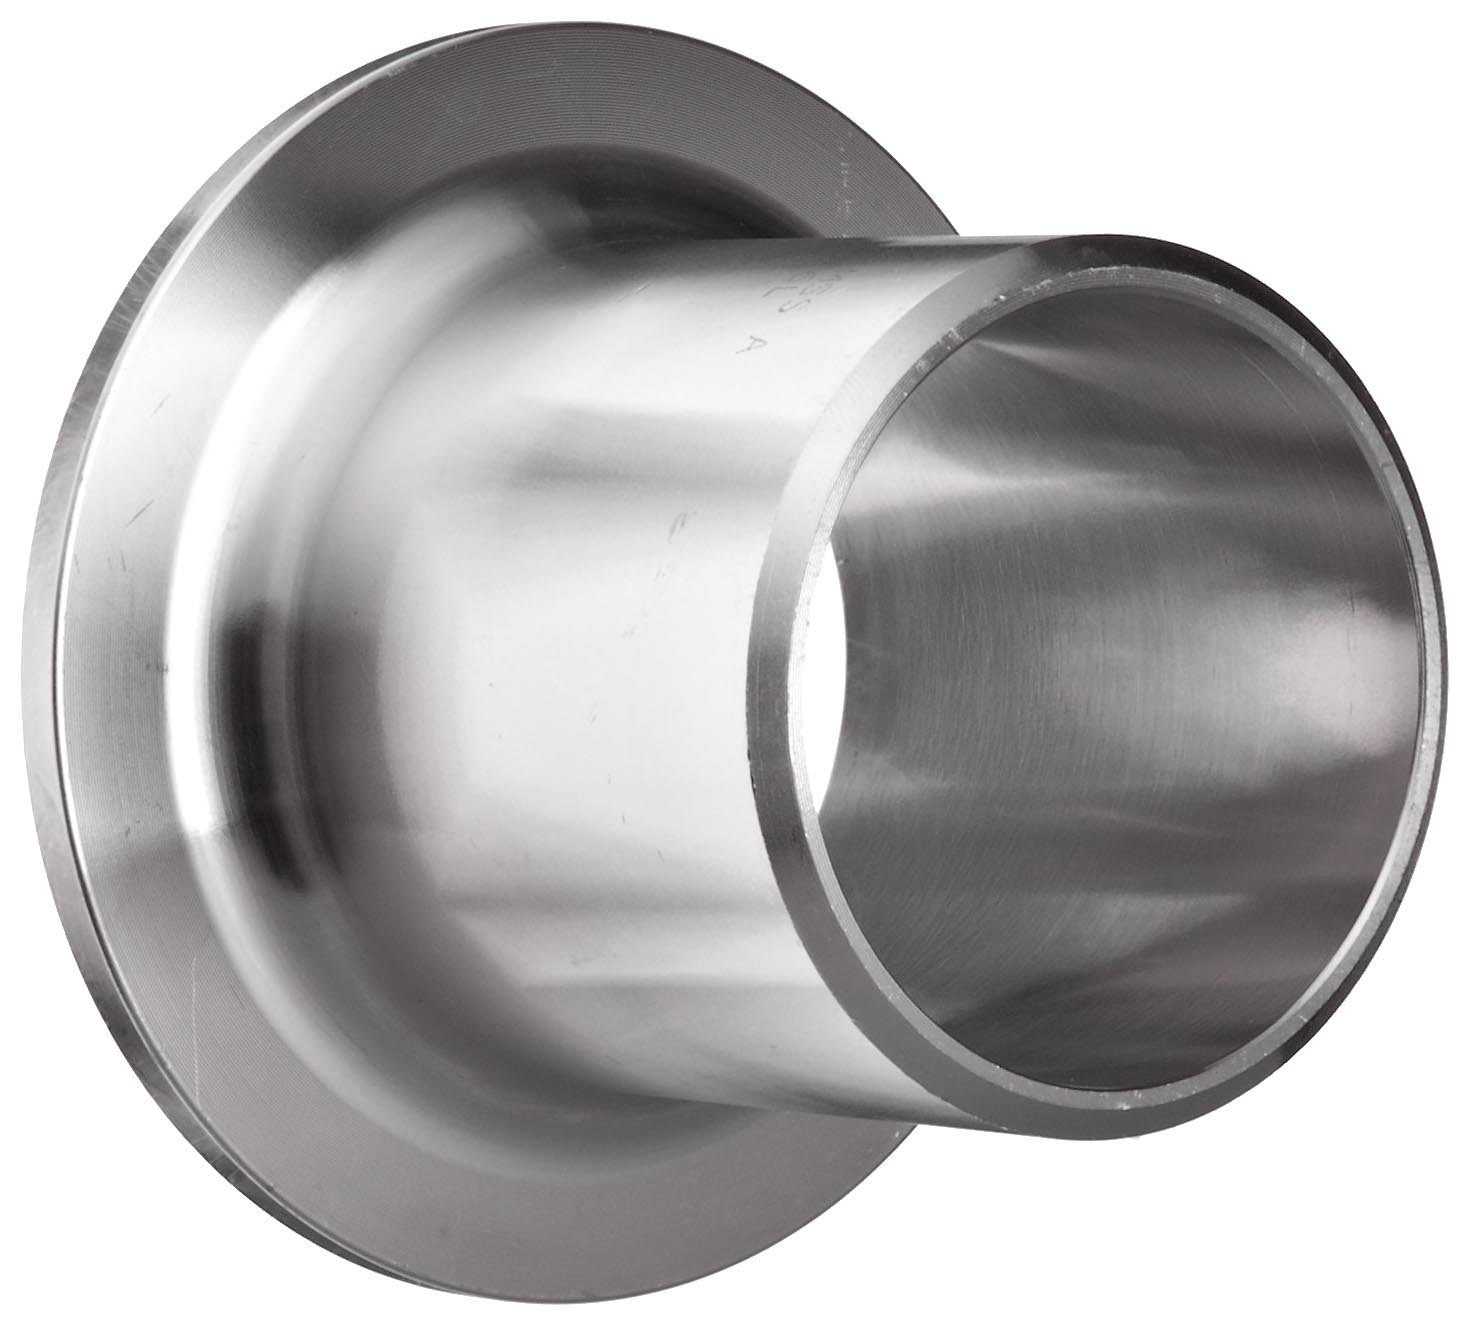 Stainless Steel 304/304L Butt-Weld Pipe Fitting, Type A MSS Stub End, Schedule 40, 8'' Pipe Size